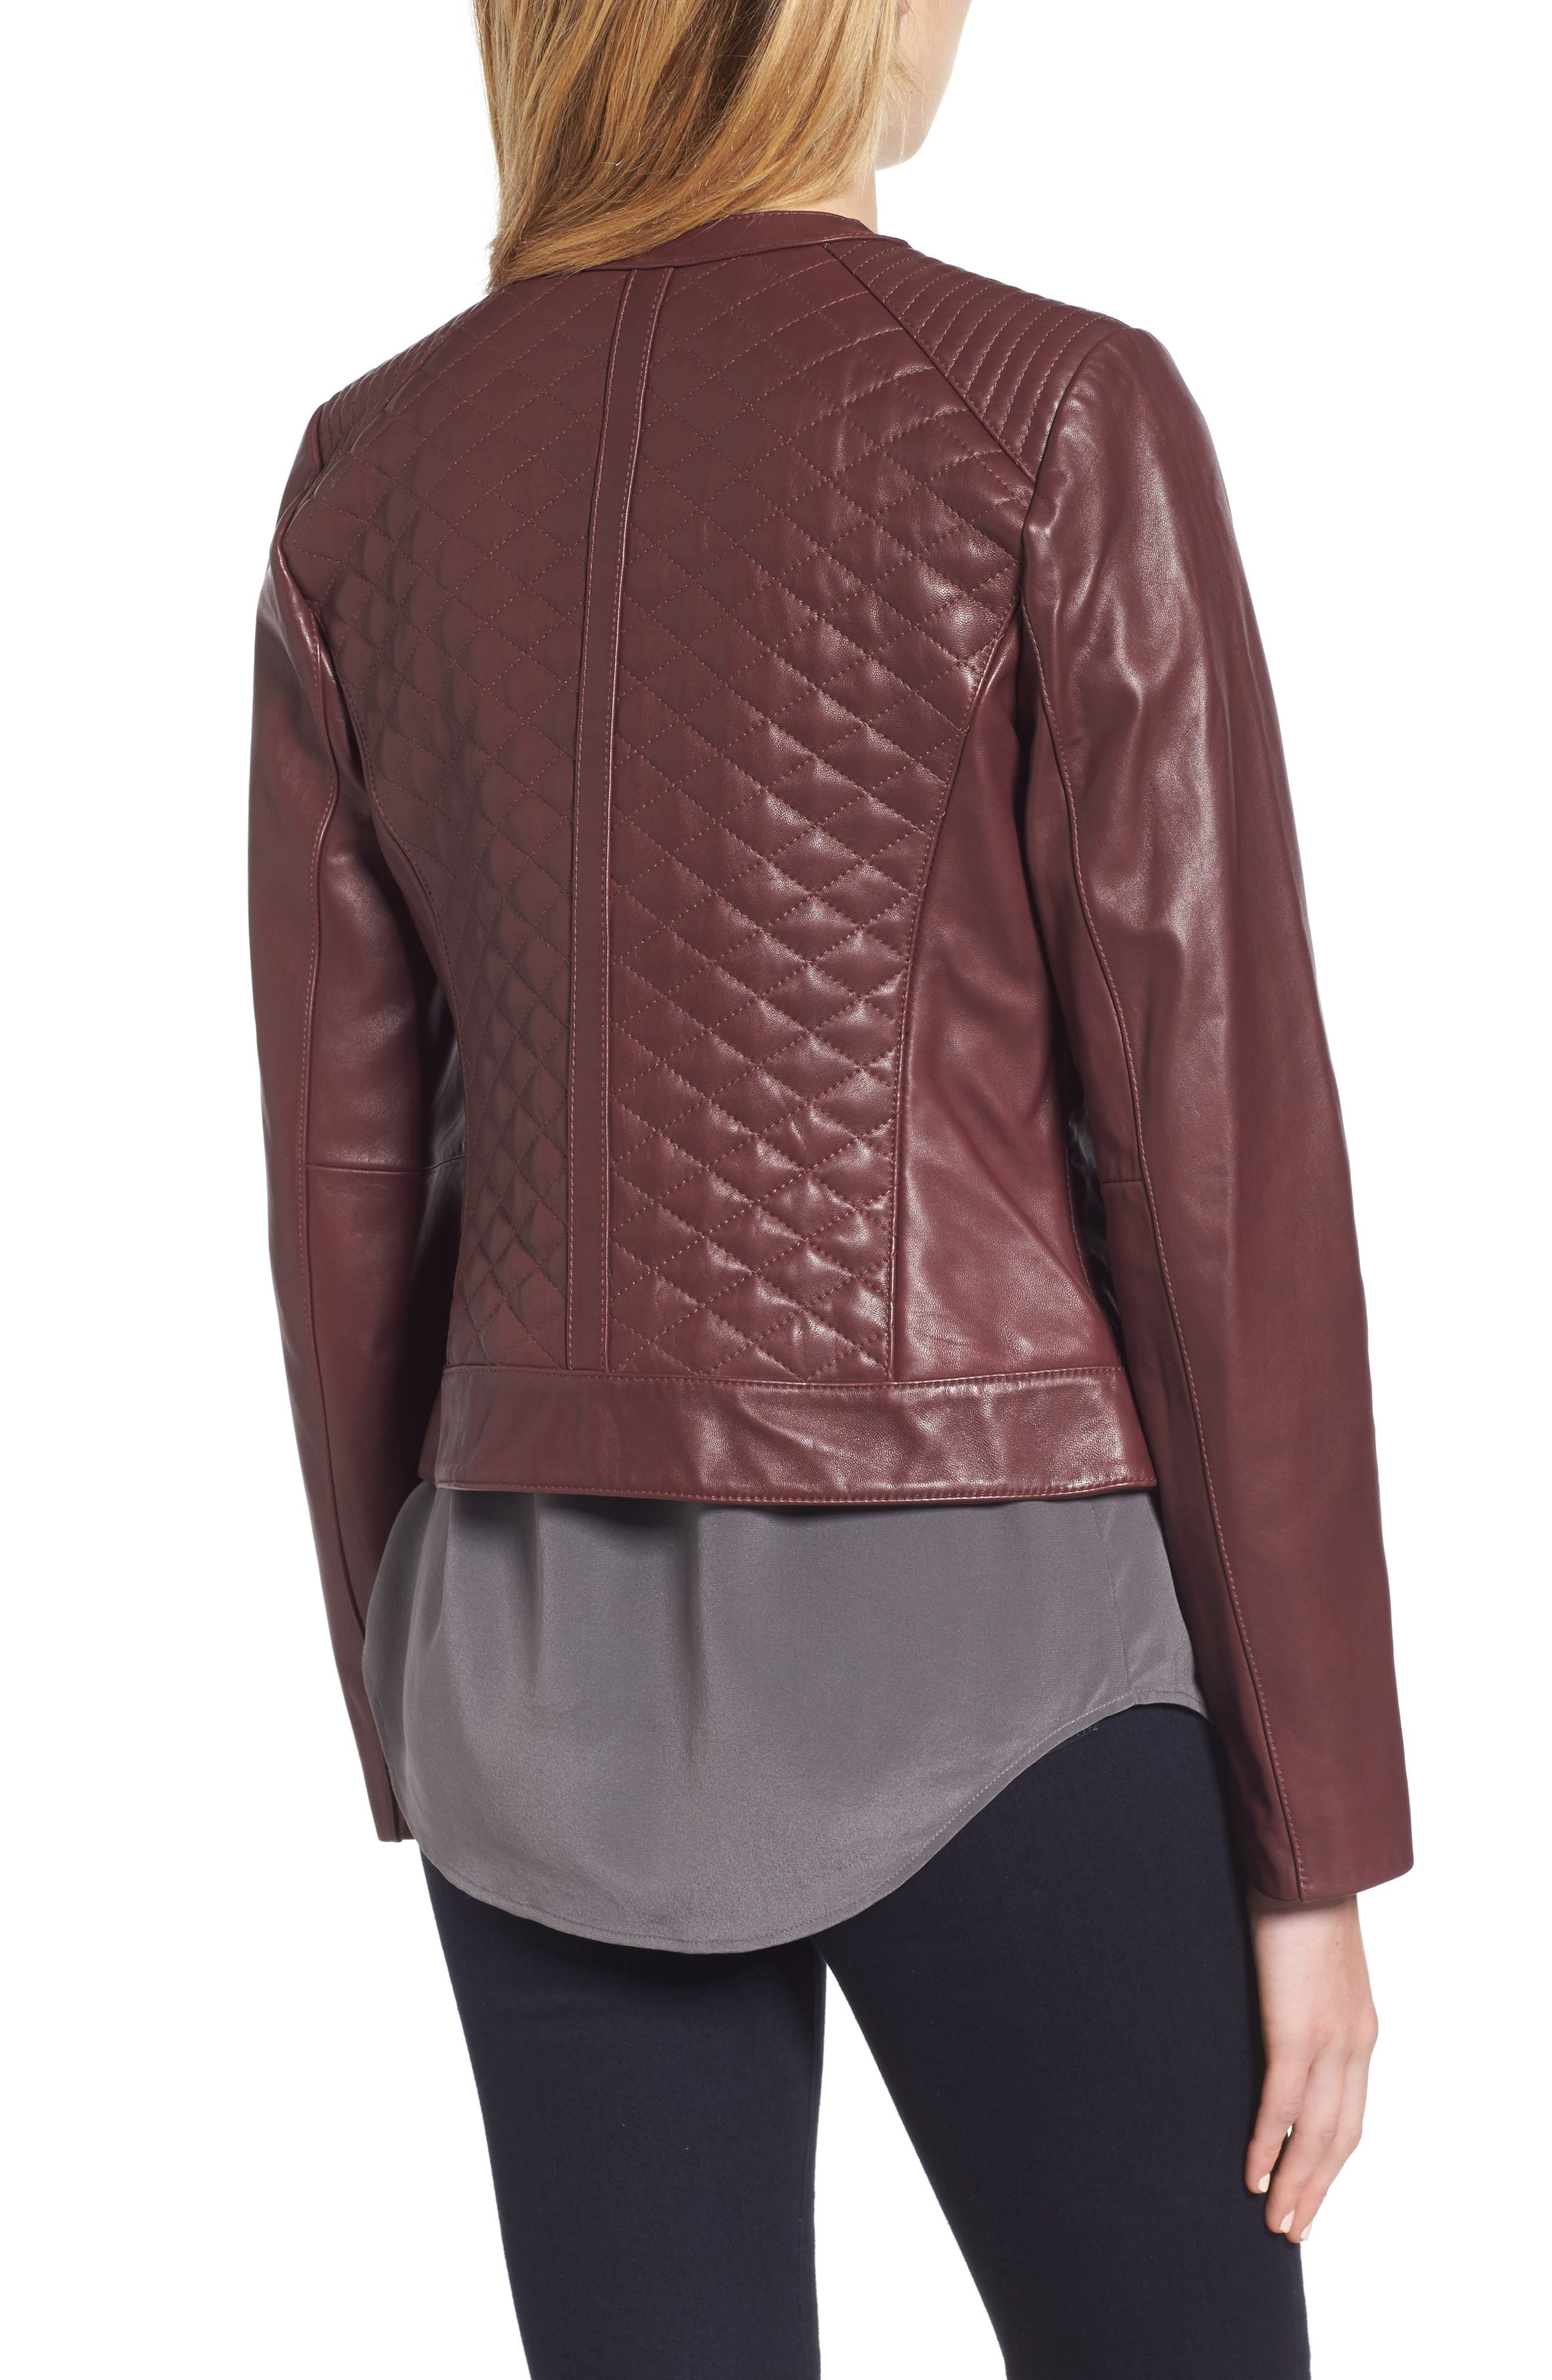 COLE HAAN,                             Quilted Leather Moto Jacket,                             Alternate thumbnail 2, color,                             602